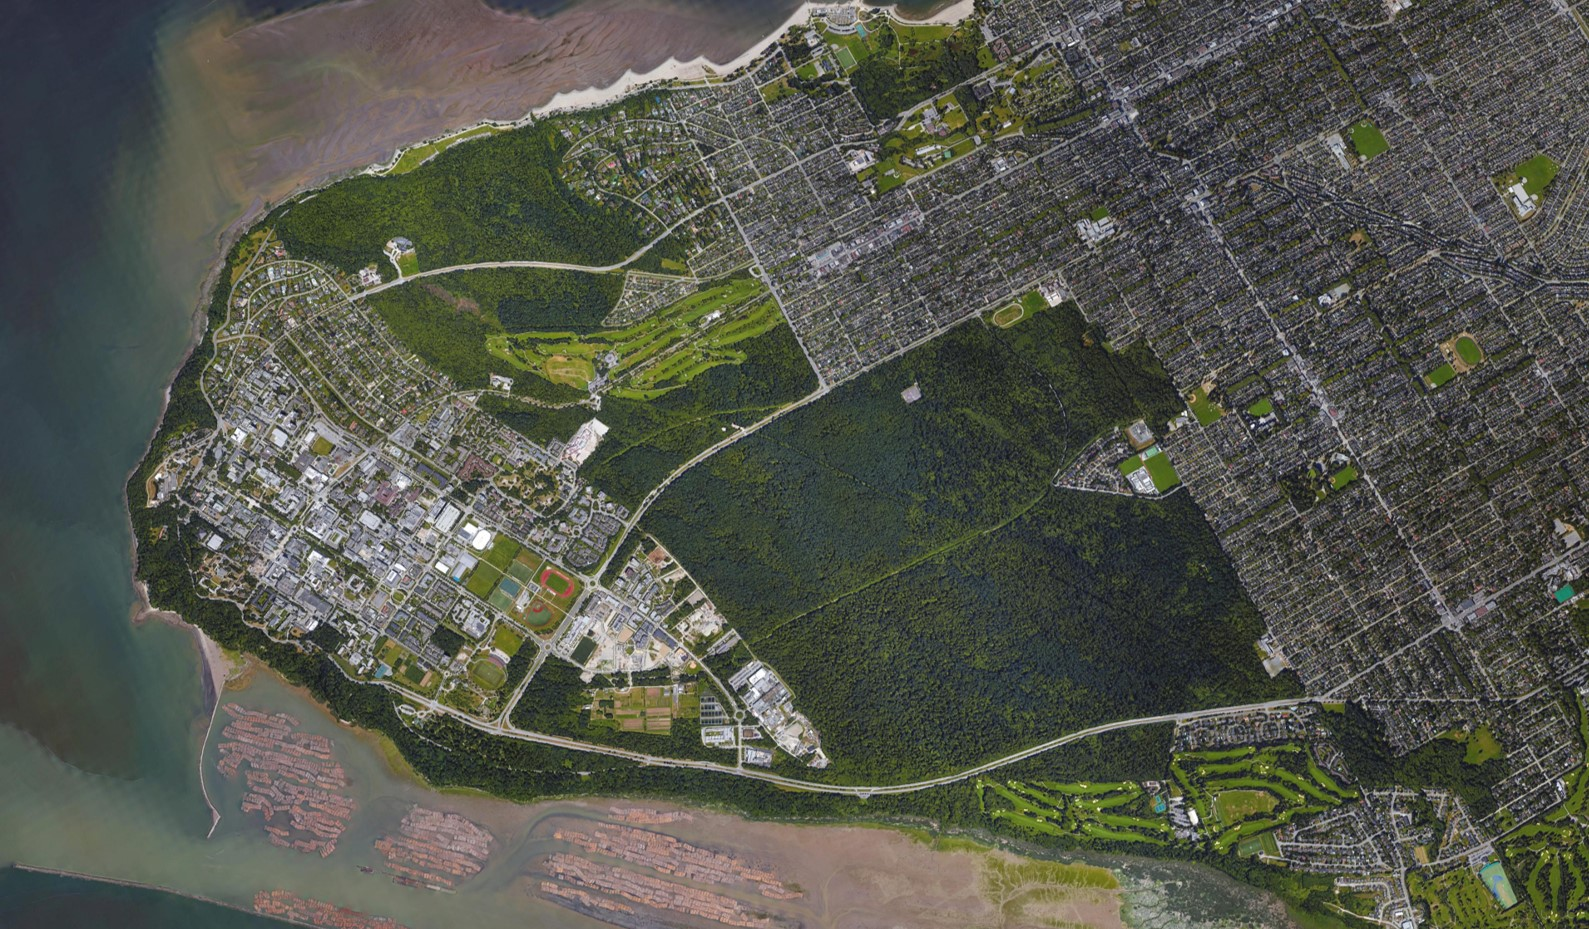 AERIAL VIEW OF POINT GREY CAMPUS TODAY